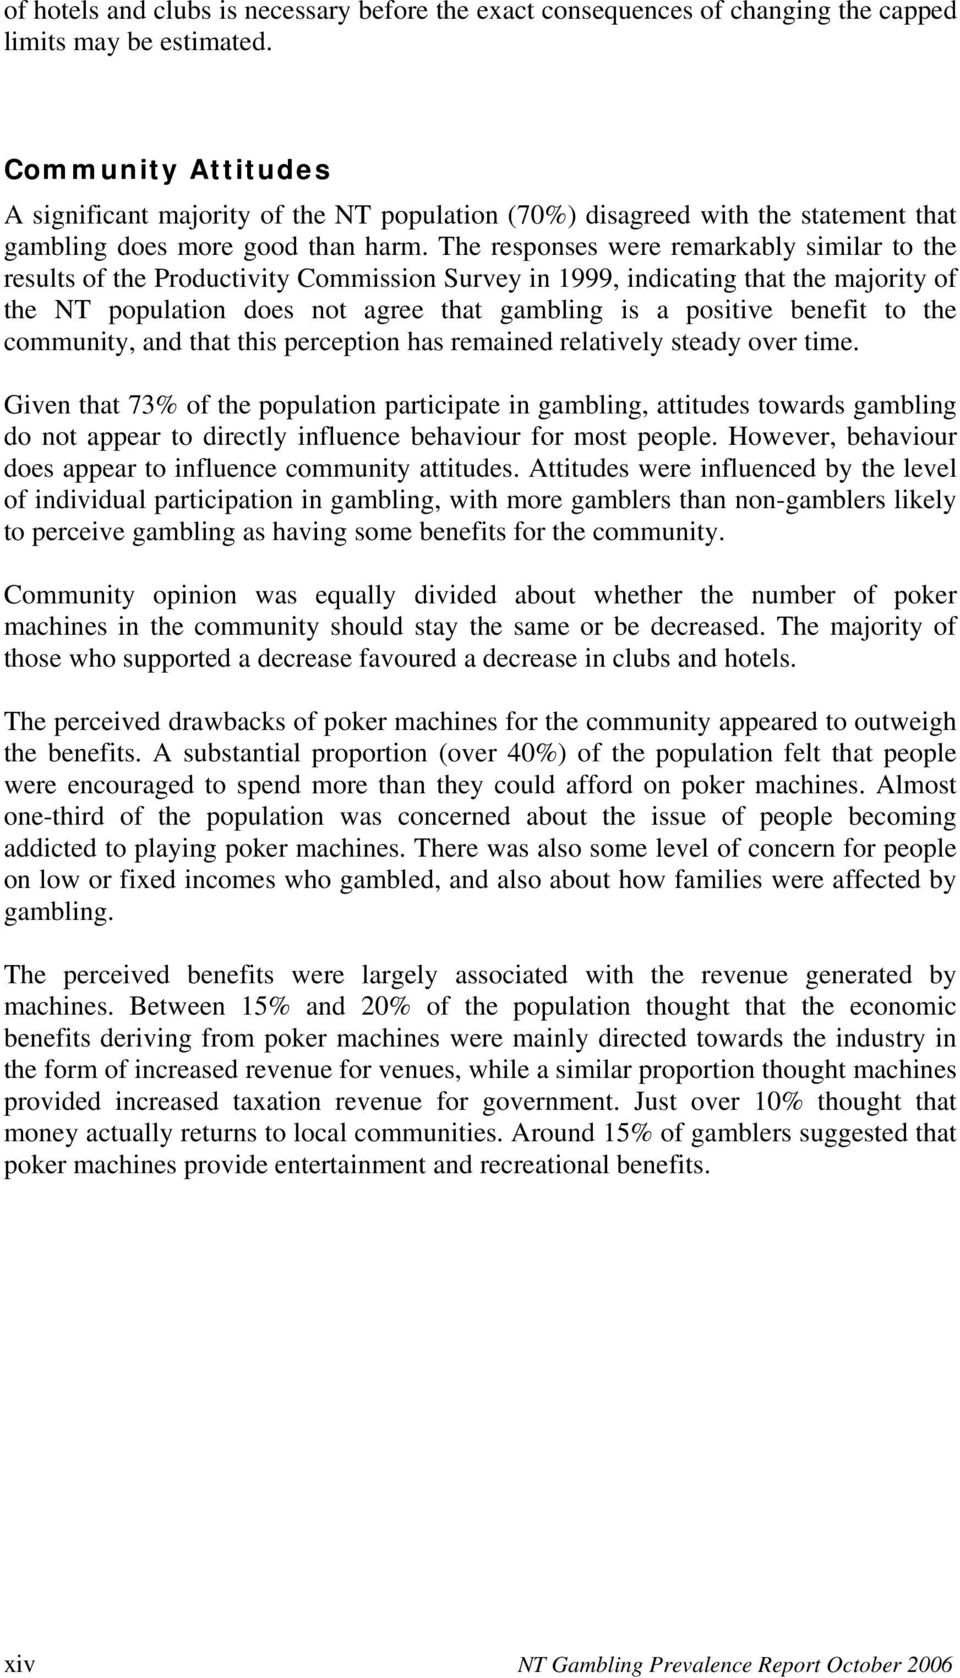 The responses were remarkably similar to the results of the Productivity Commission Survey in 1999, indicating that the majority of the NT population does not agree that gambling is a positive